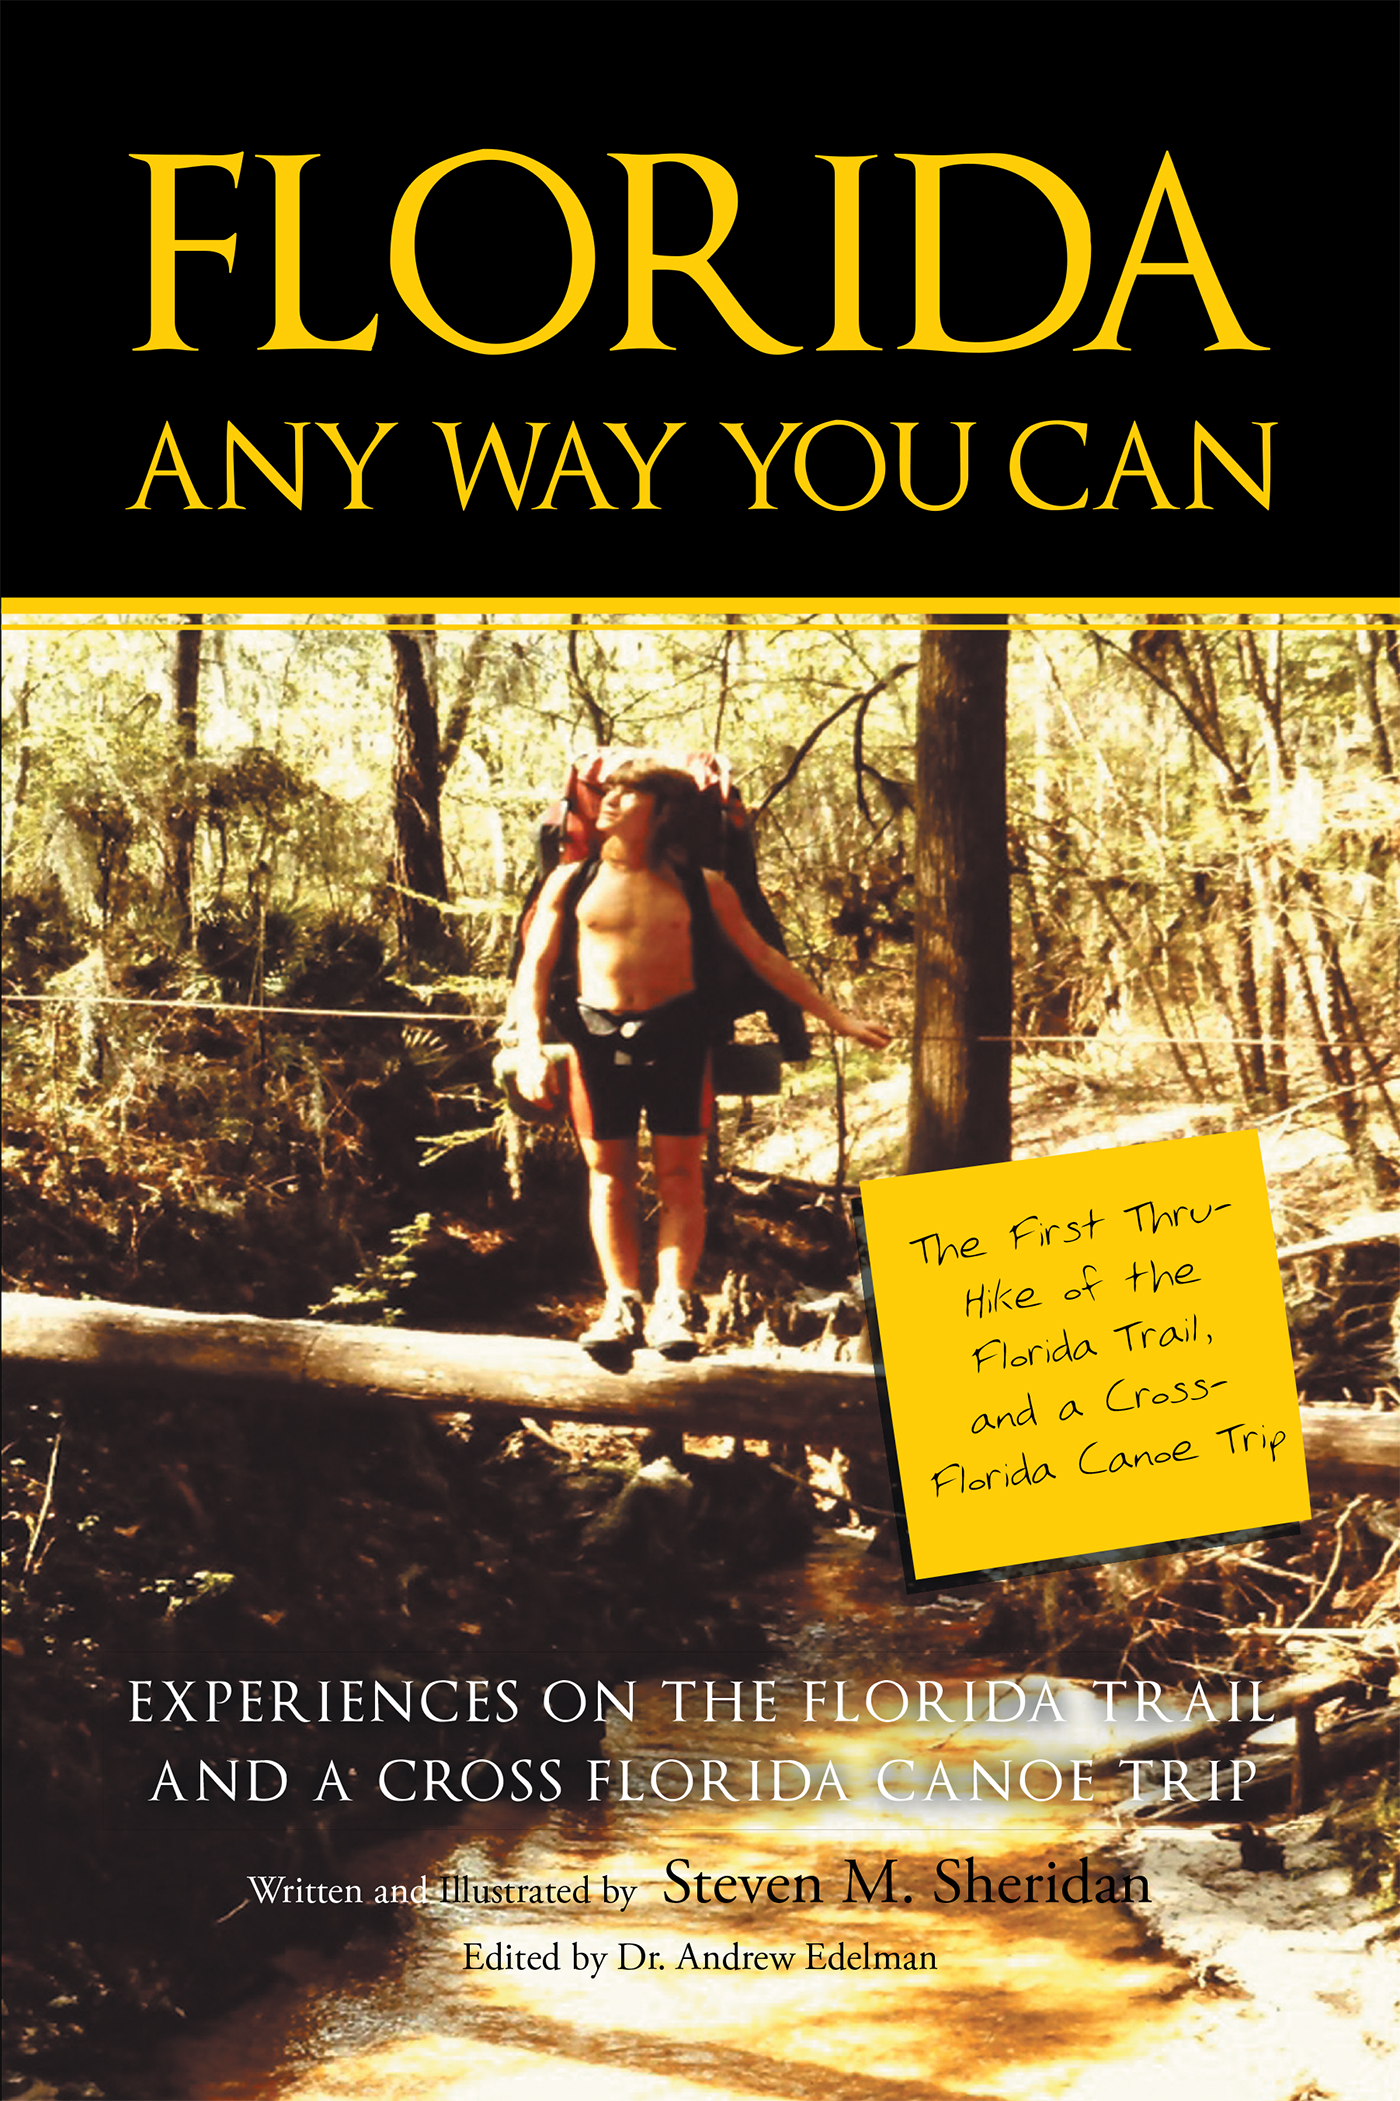 Steven Sheridan S New Book Florida Any Way You Can Is A